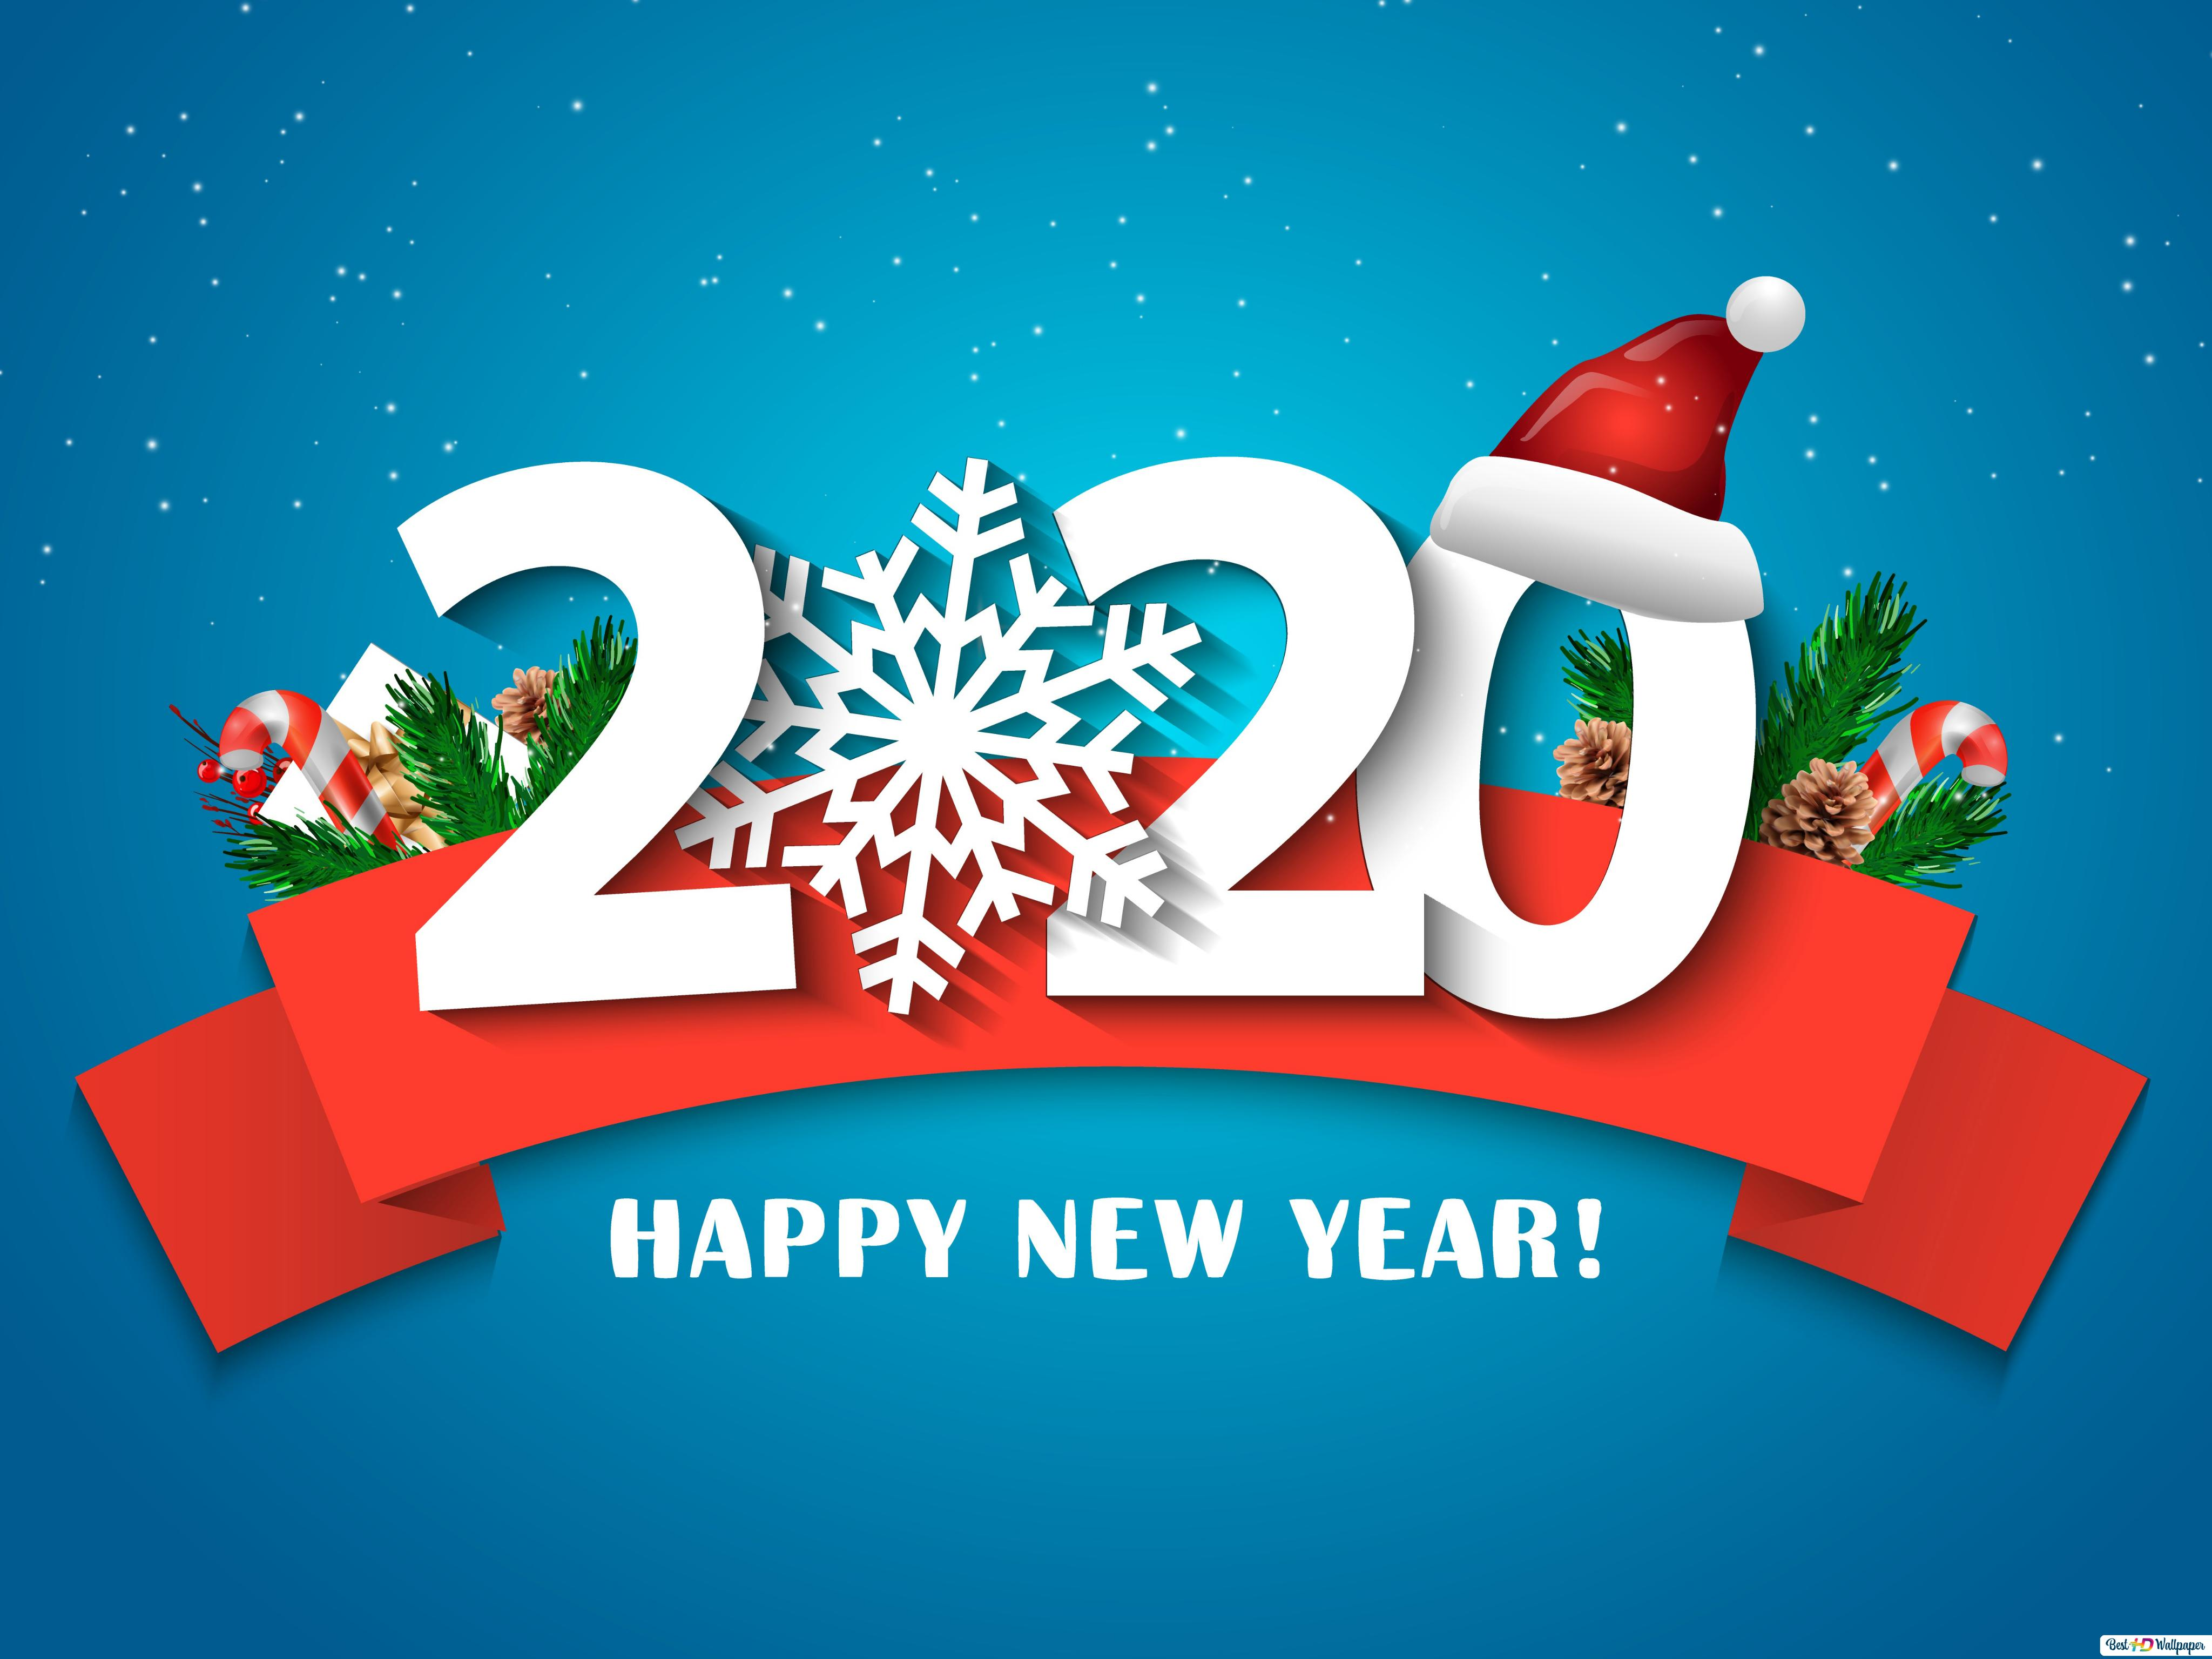 Best Wishes For New Year 2020 Hd Wallpaper Download